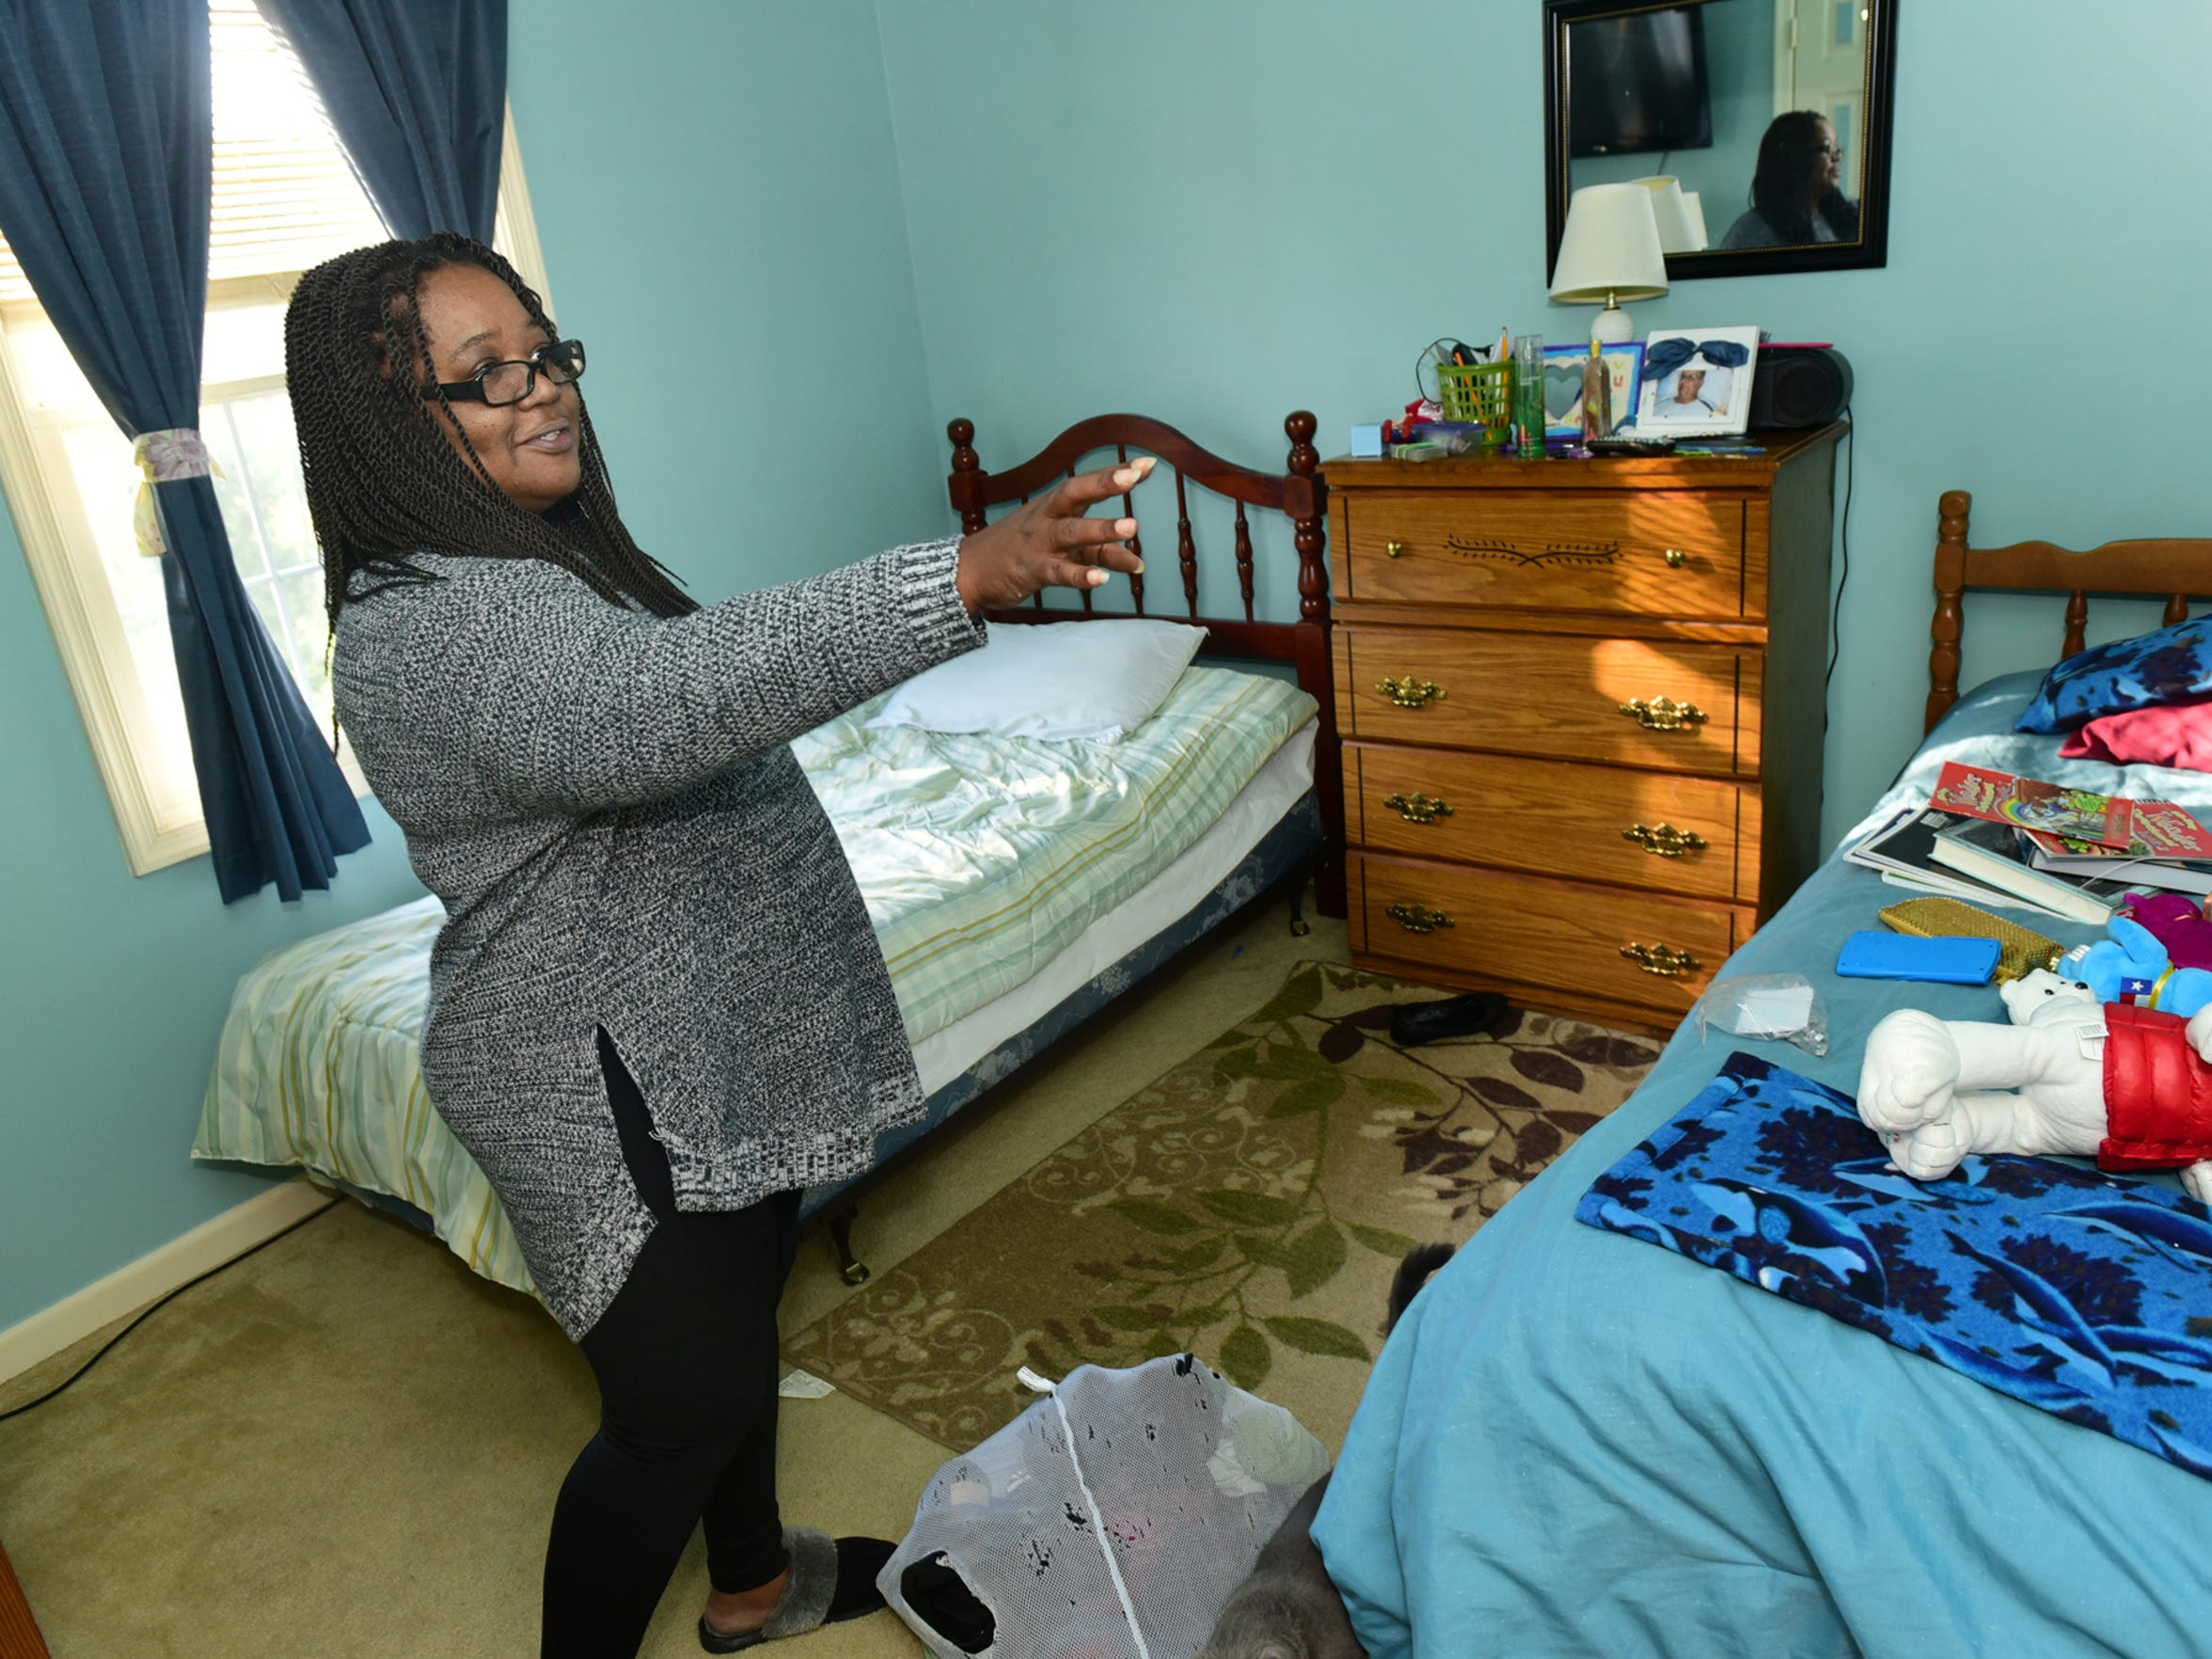 Lydia Dupree walks through the room of one of her foster